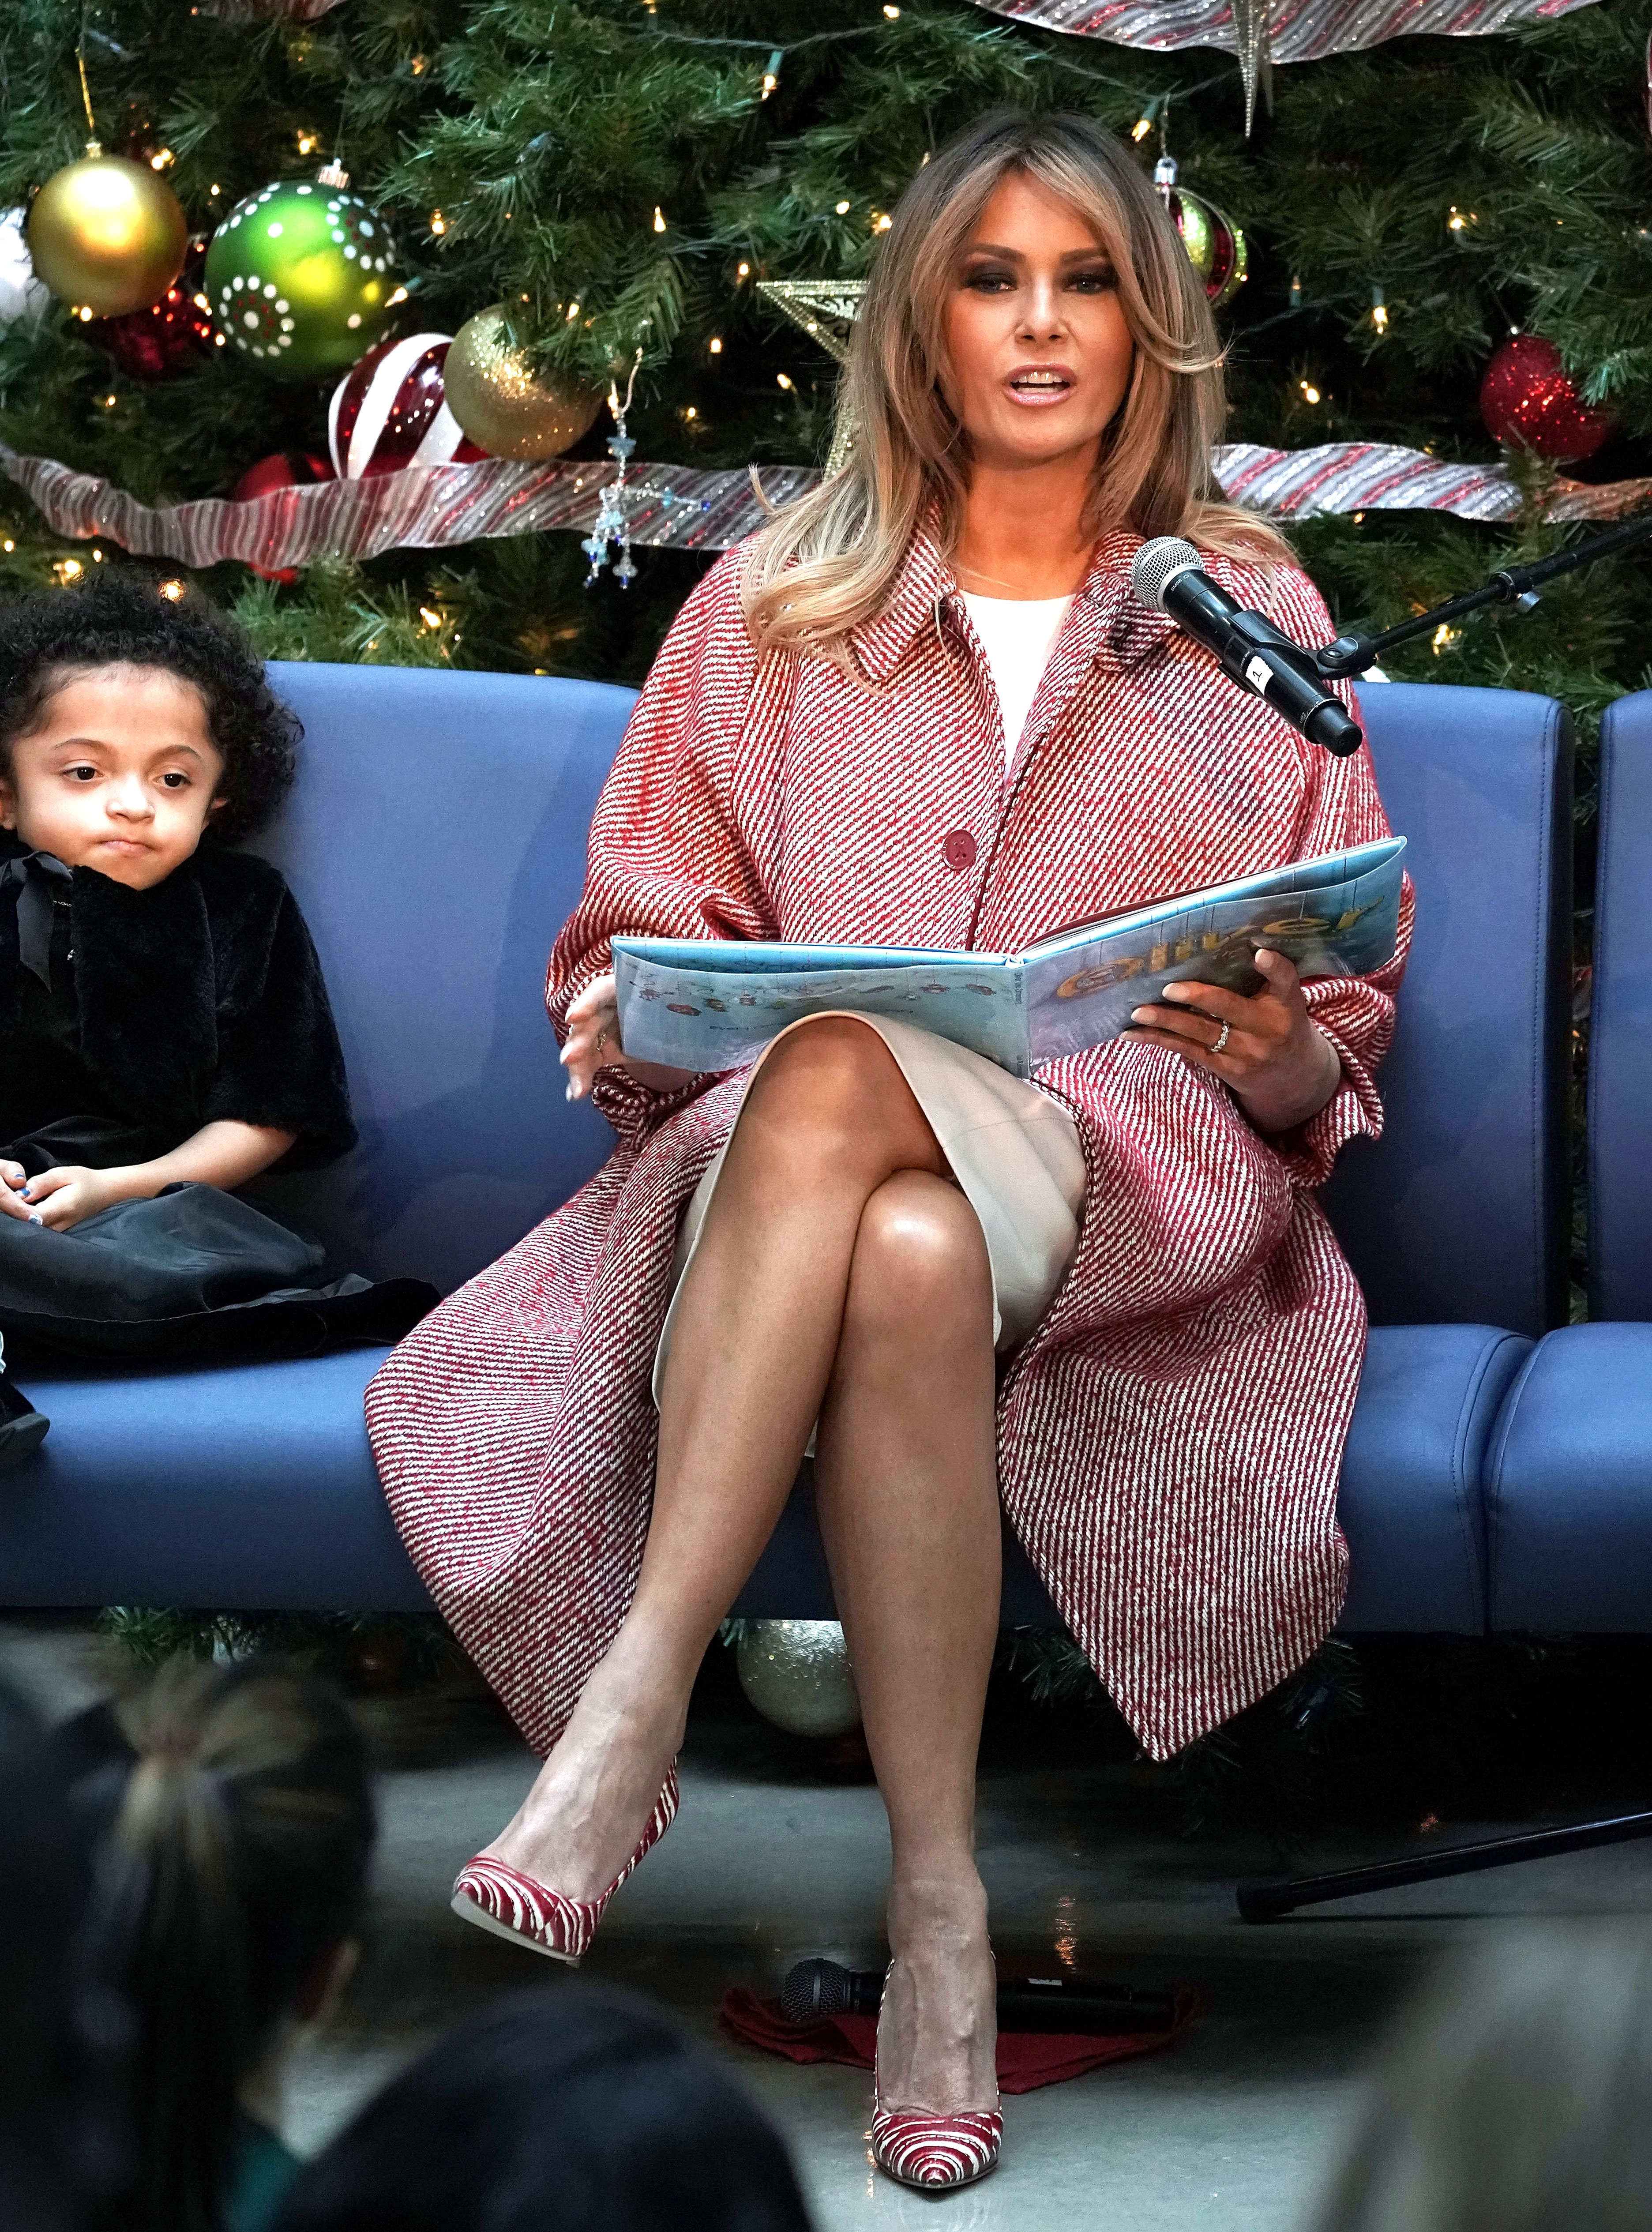 melania-trump-striped-outfit-blonde-hair - Visiting the Children's National Hospital in Washington, D.C., the First Lady was festive in a $750 red and white Tomas Maier wool-blend coat that she paired with matching Manolo Blahnik heels and an ivory sheath dress.